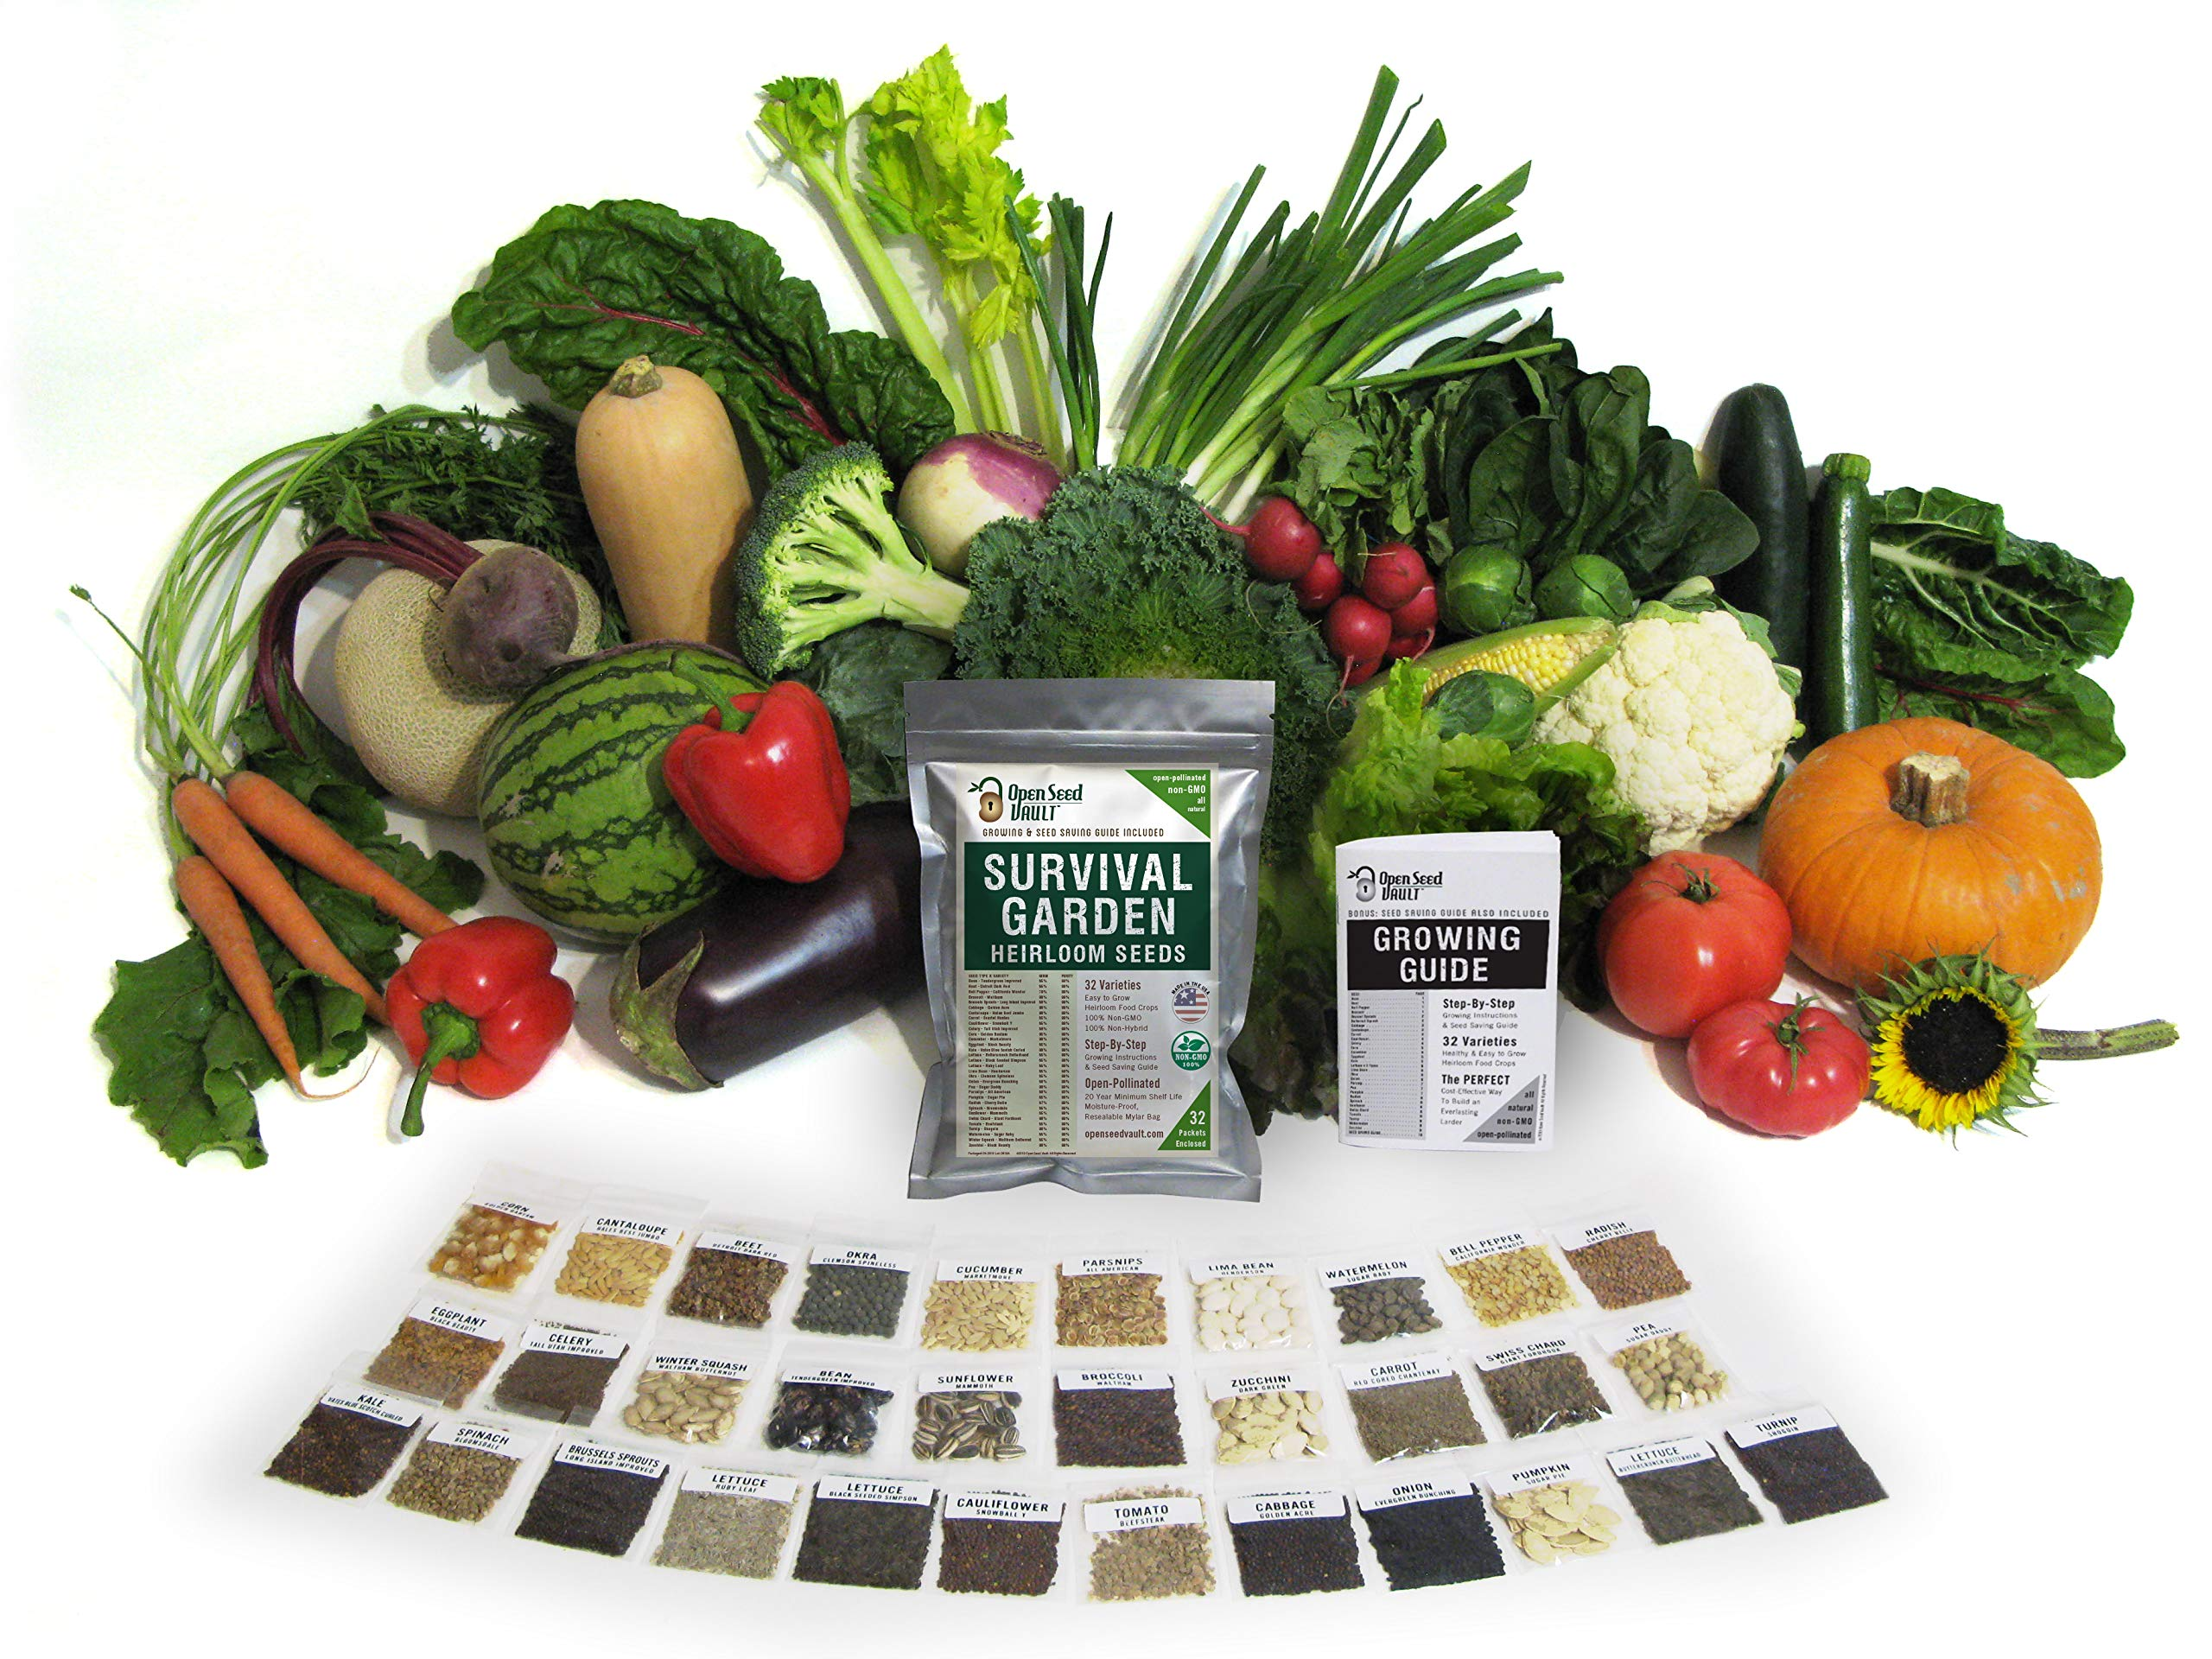 Survival Garden 15,000 Non GMO Heirloom Vegetable Seeds Survival Garden 32 Variety Pack by Open Seed Vault 2 32 Varieties of All Natural Vegetable Seeds: Non hybrid, Non gmo, Heirloom 100% Naturally Grown and Open Pollinated seeds with high Germination Rate Vegetable Growing and Seed Harvesting Guide Included with Seeds Tested for Maximum Germination and Yield.